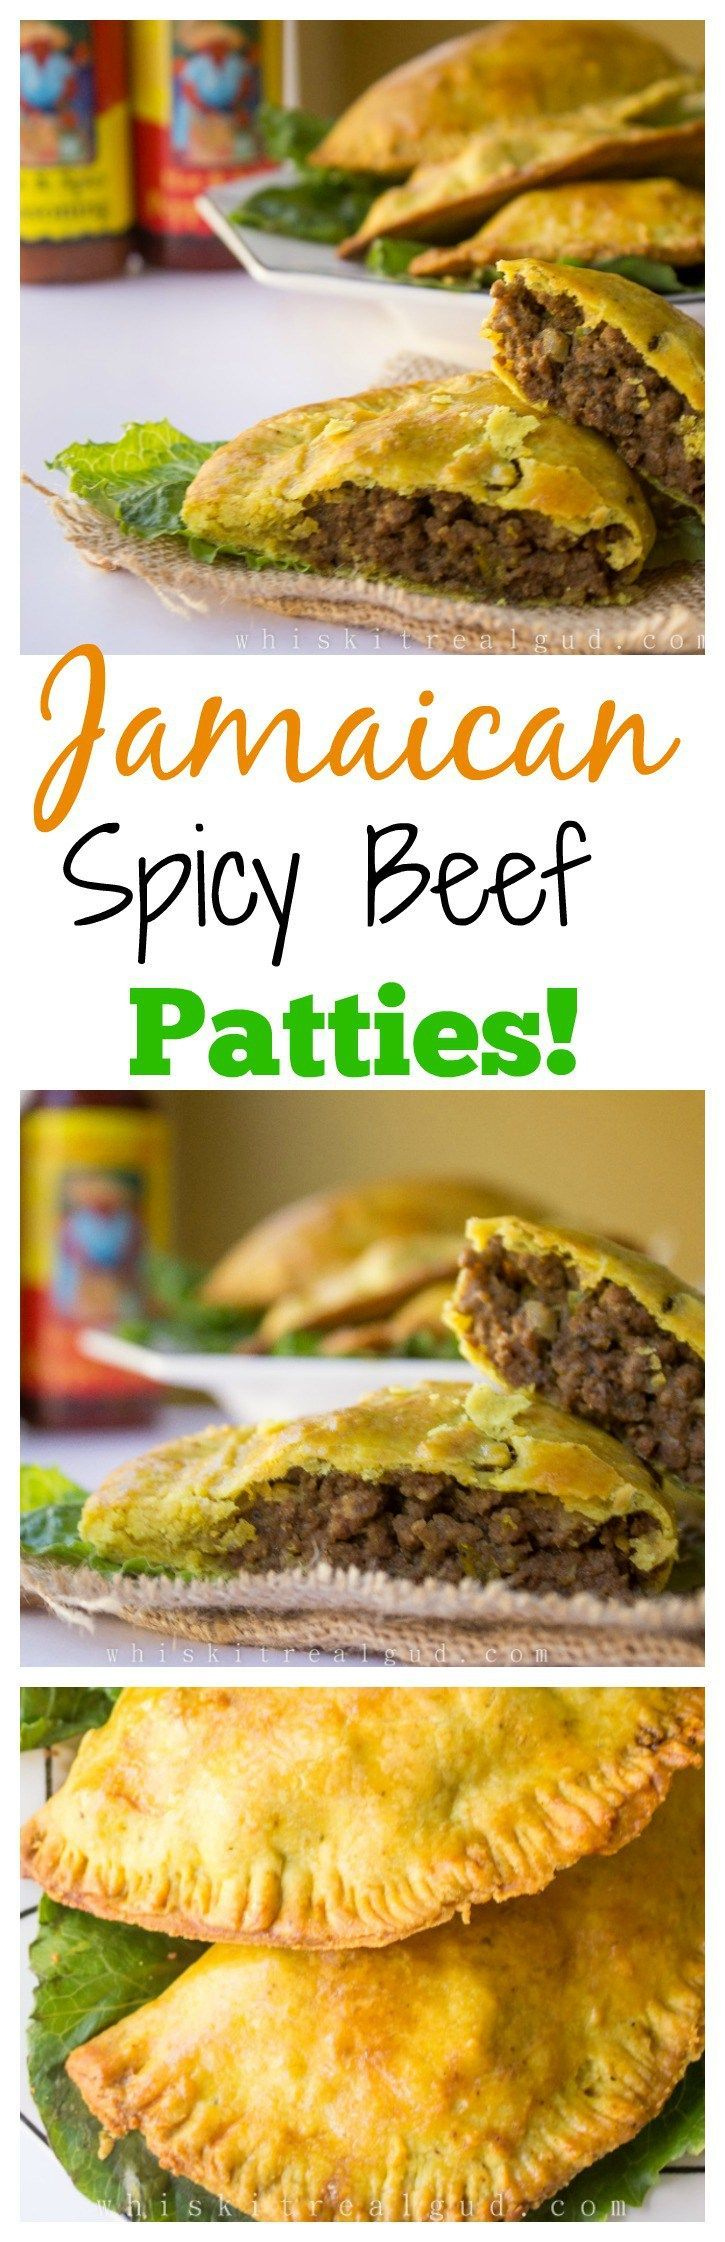 Jamaican Beef Patties. So good! Now I  don't have to buy them anymore.